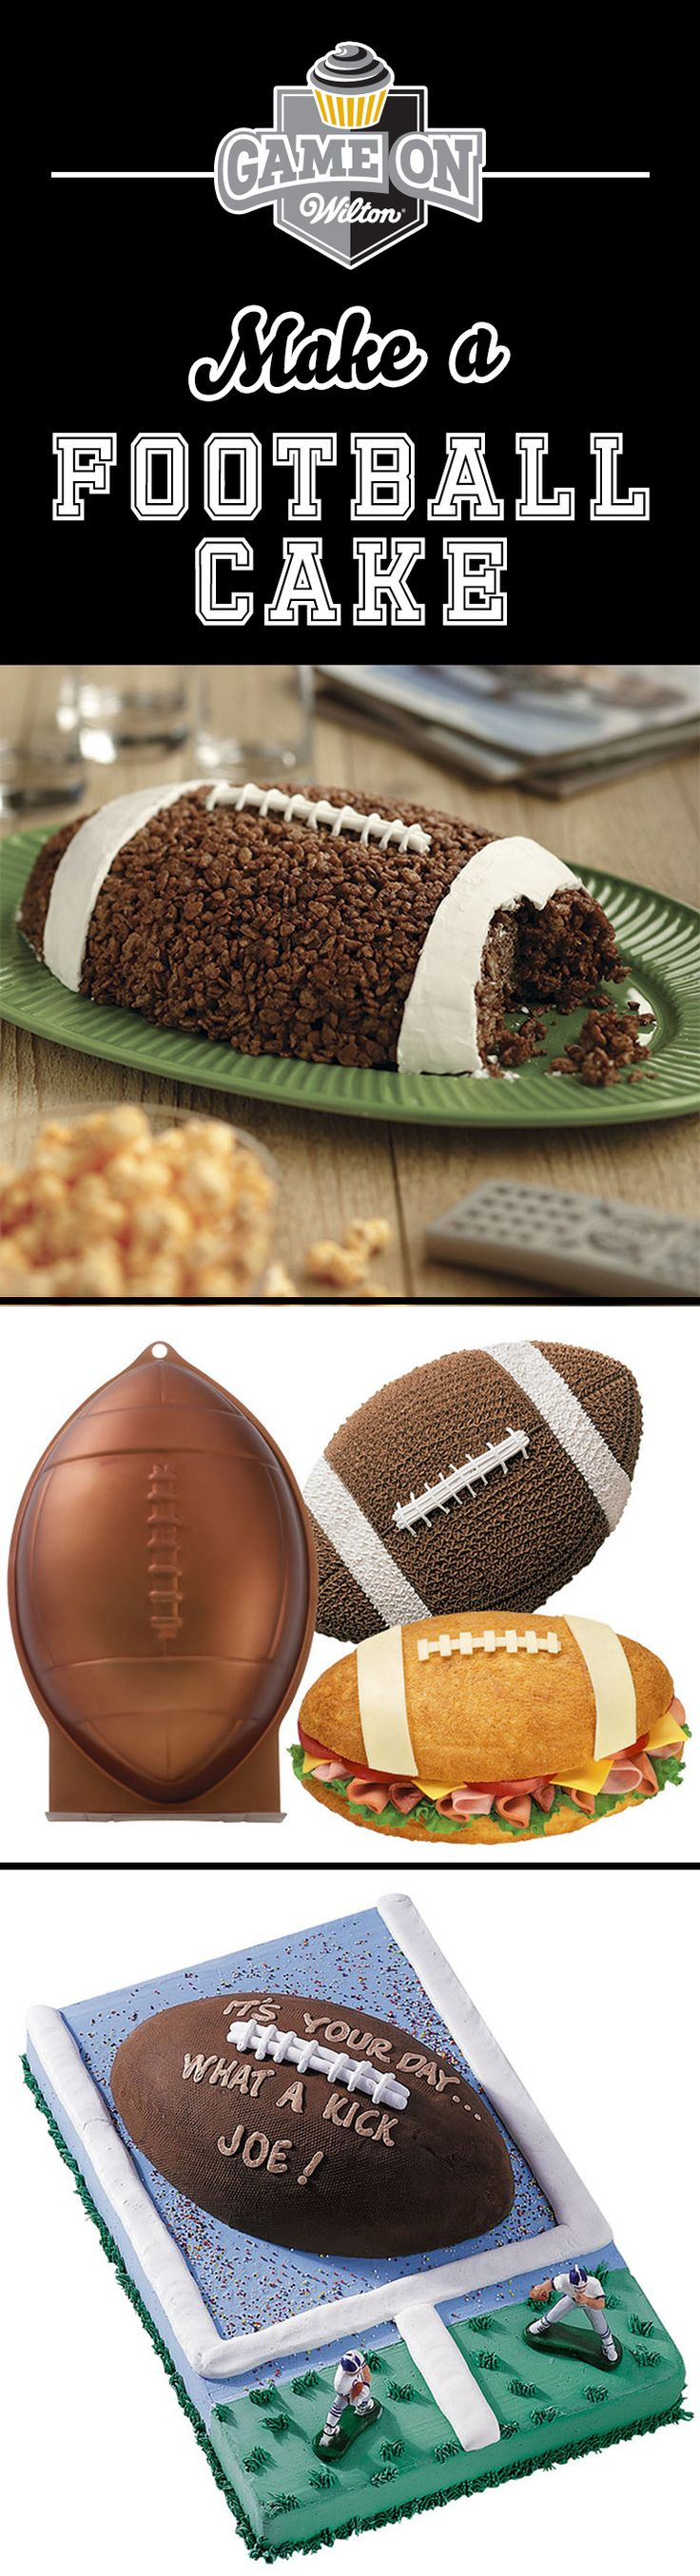 233 best Game Day images on Pinterest Desserts Tailgate parties